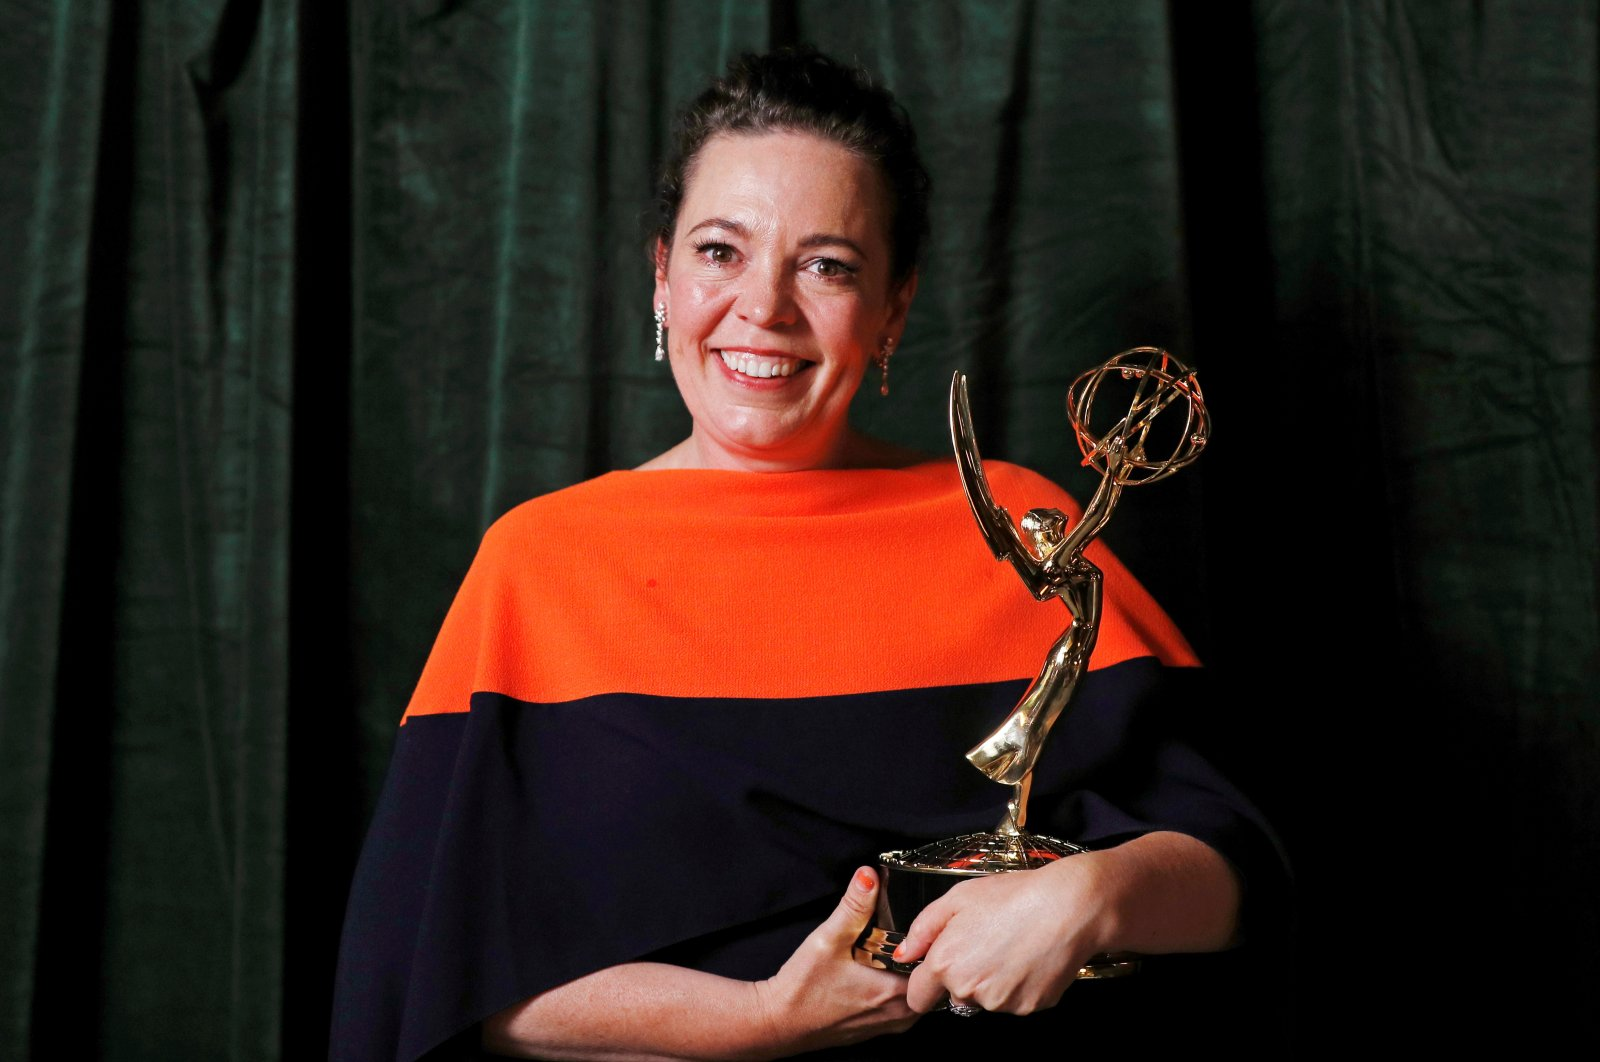 """Olivia Colman poses with her Emmy award for Outstanding Lead Actress in a Drama Series, backstage at the Netflix UK Primetime Emmy for """"The Crown"""", in London, Britain, Sept. 20, 2021. (REUTERS Photo)"""